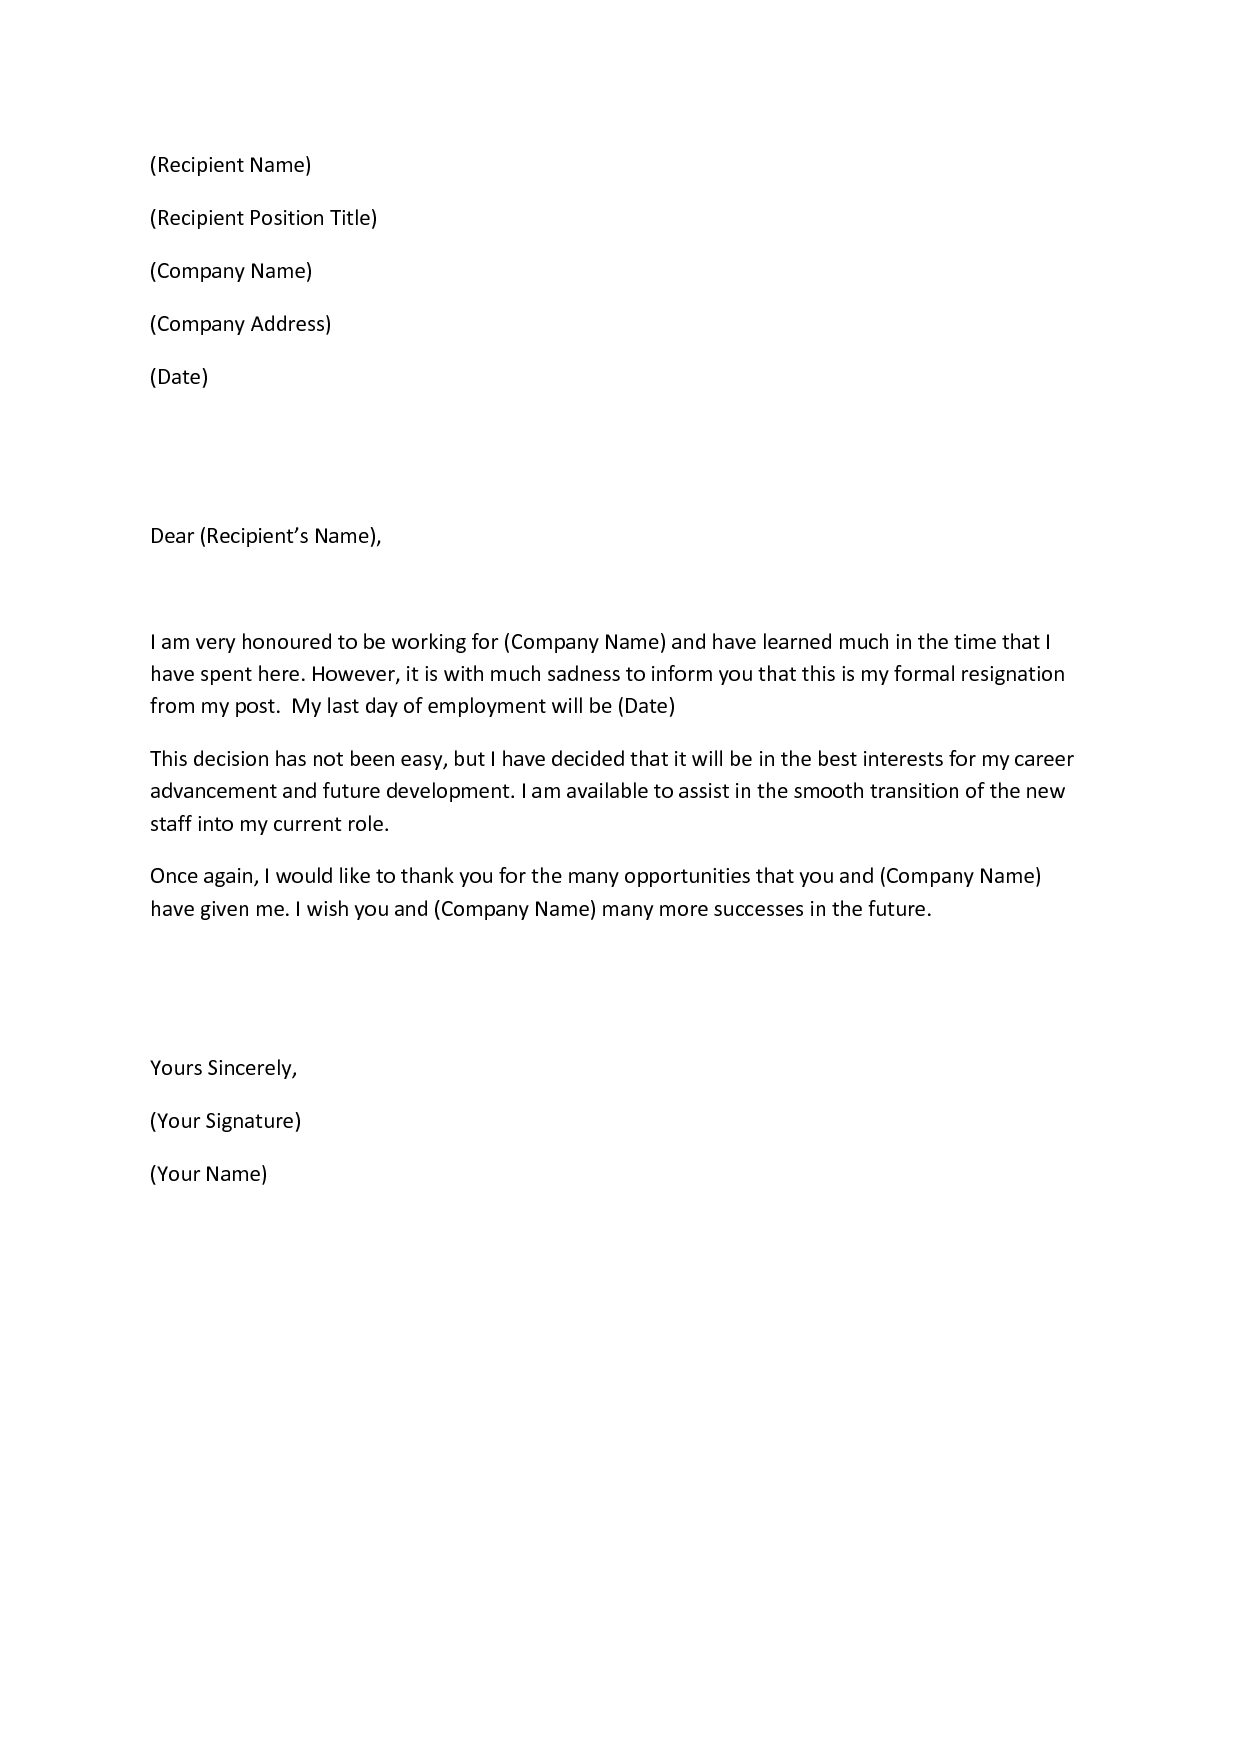 Writing a resignation letter examples resignation letter examples in ideas about resignation letter sample of 1000 ideas about resignation letter sample of resignation letter resignation thecheapjerseys Images